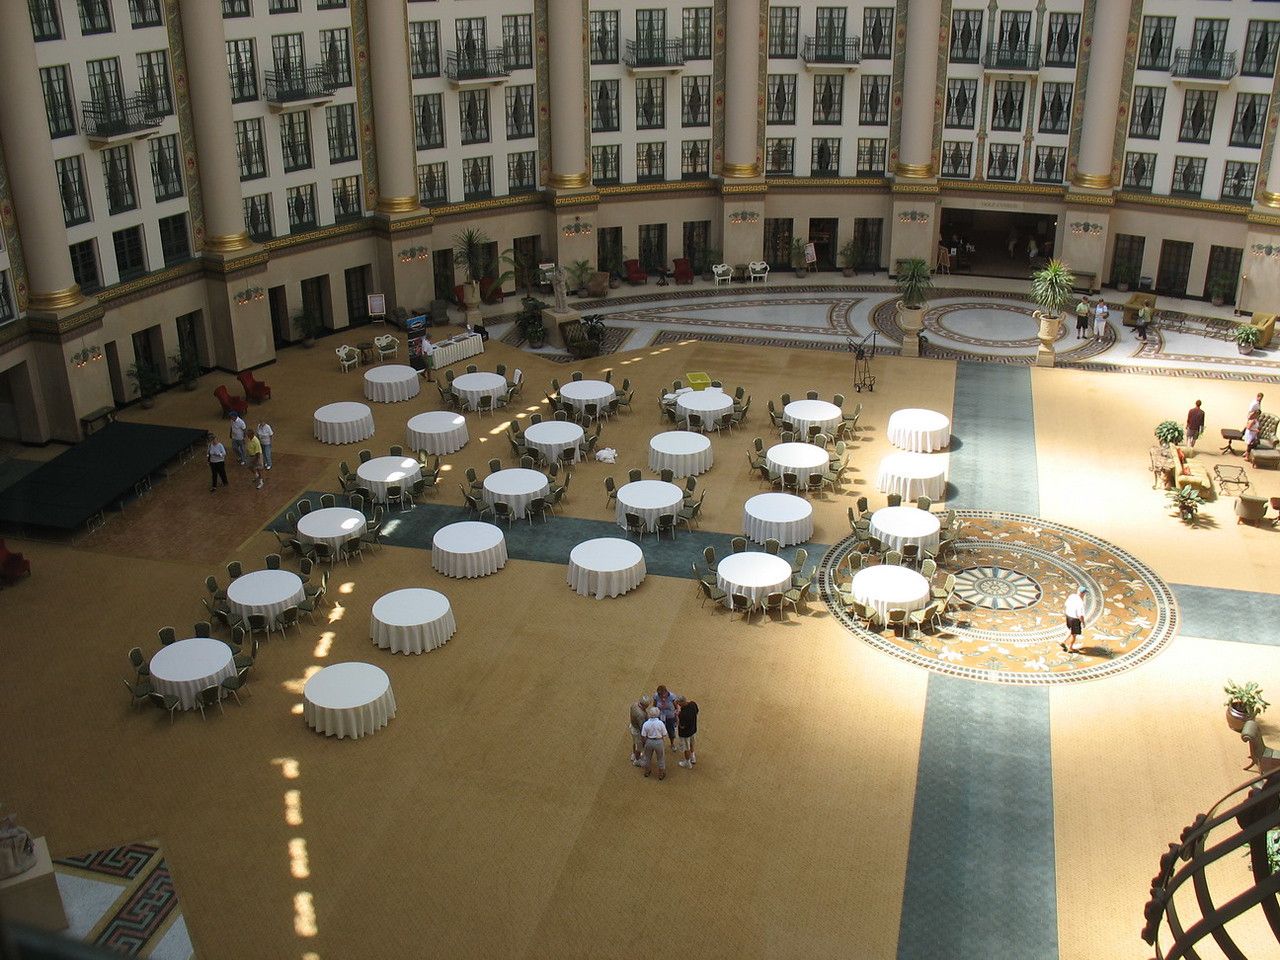 Looking down into the Atrium as they were setting up for our banquet. Great location, but sound was a problem as there was a significant echo.